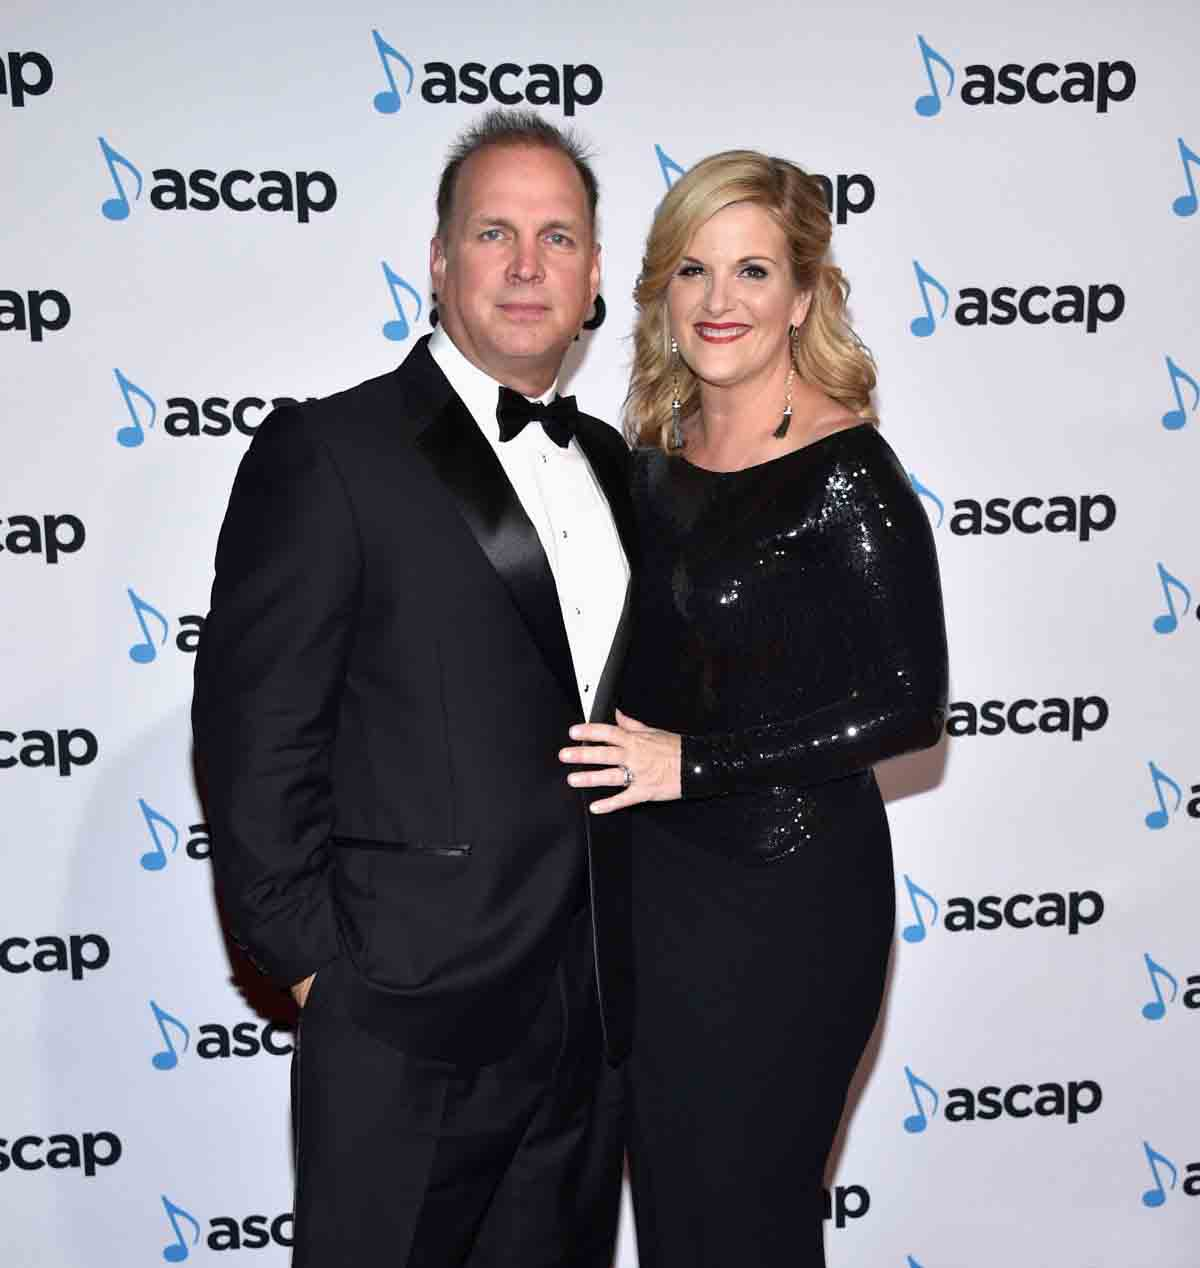 Trisha Yearwood Net Worth, Children, Spouse, Age